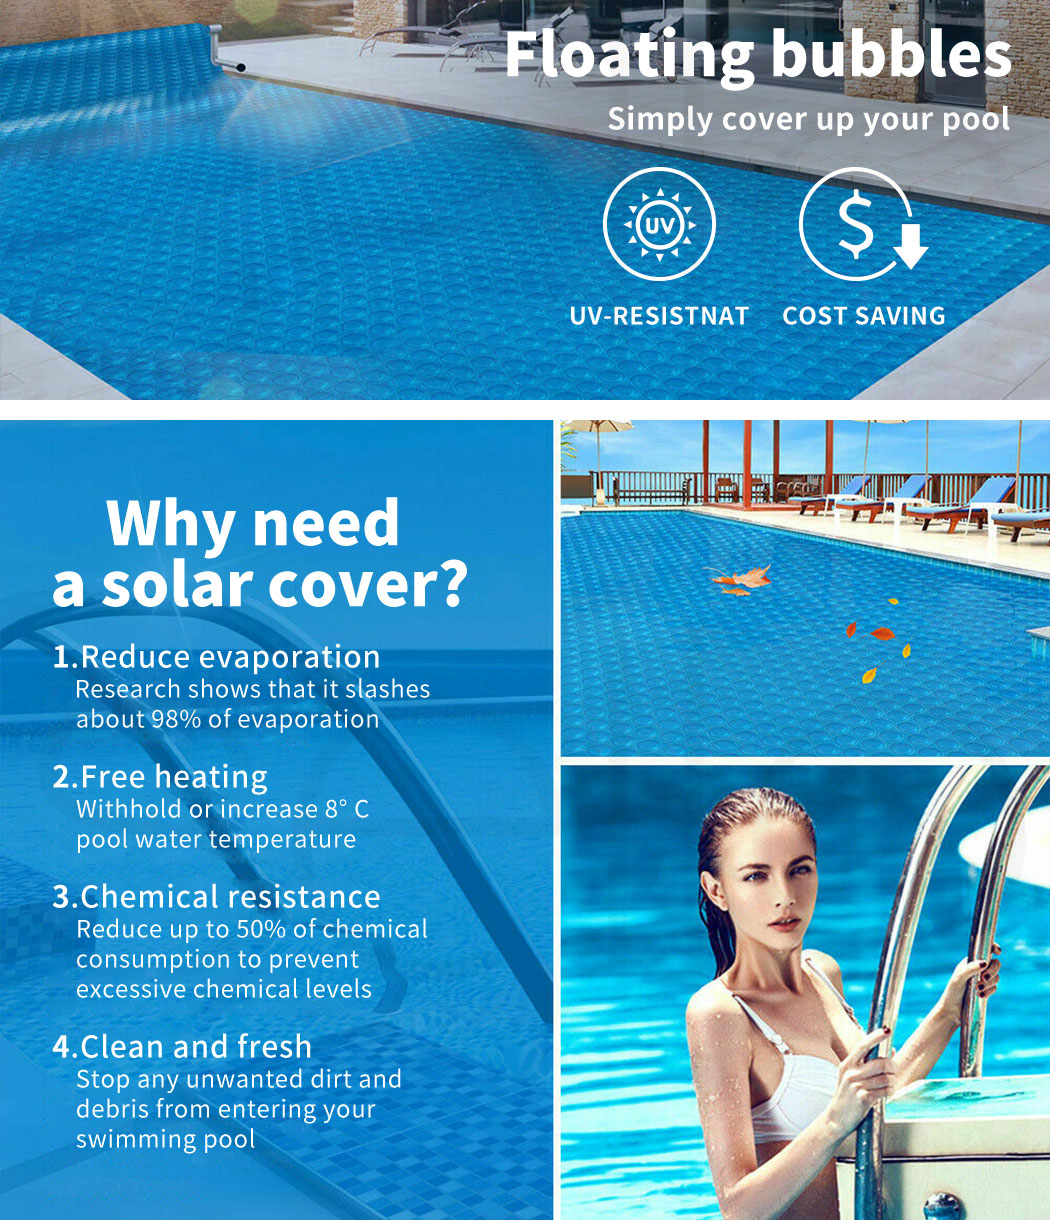 Solar-Swimming-Pool-Cover-400-500-Micron-Outdoor-Bubble-Blanket-Covers-7-Sizes thumbnail 71